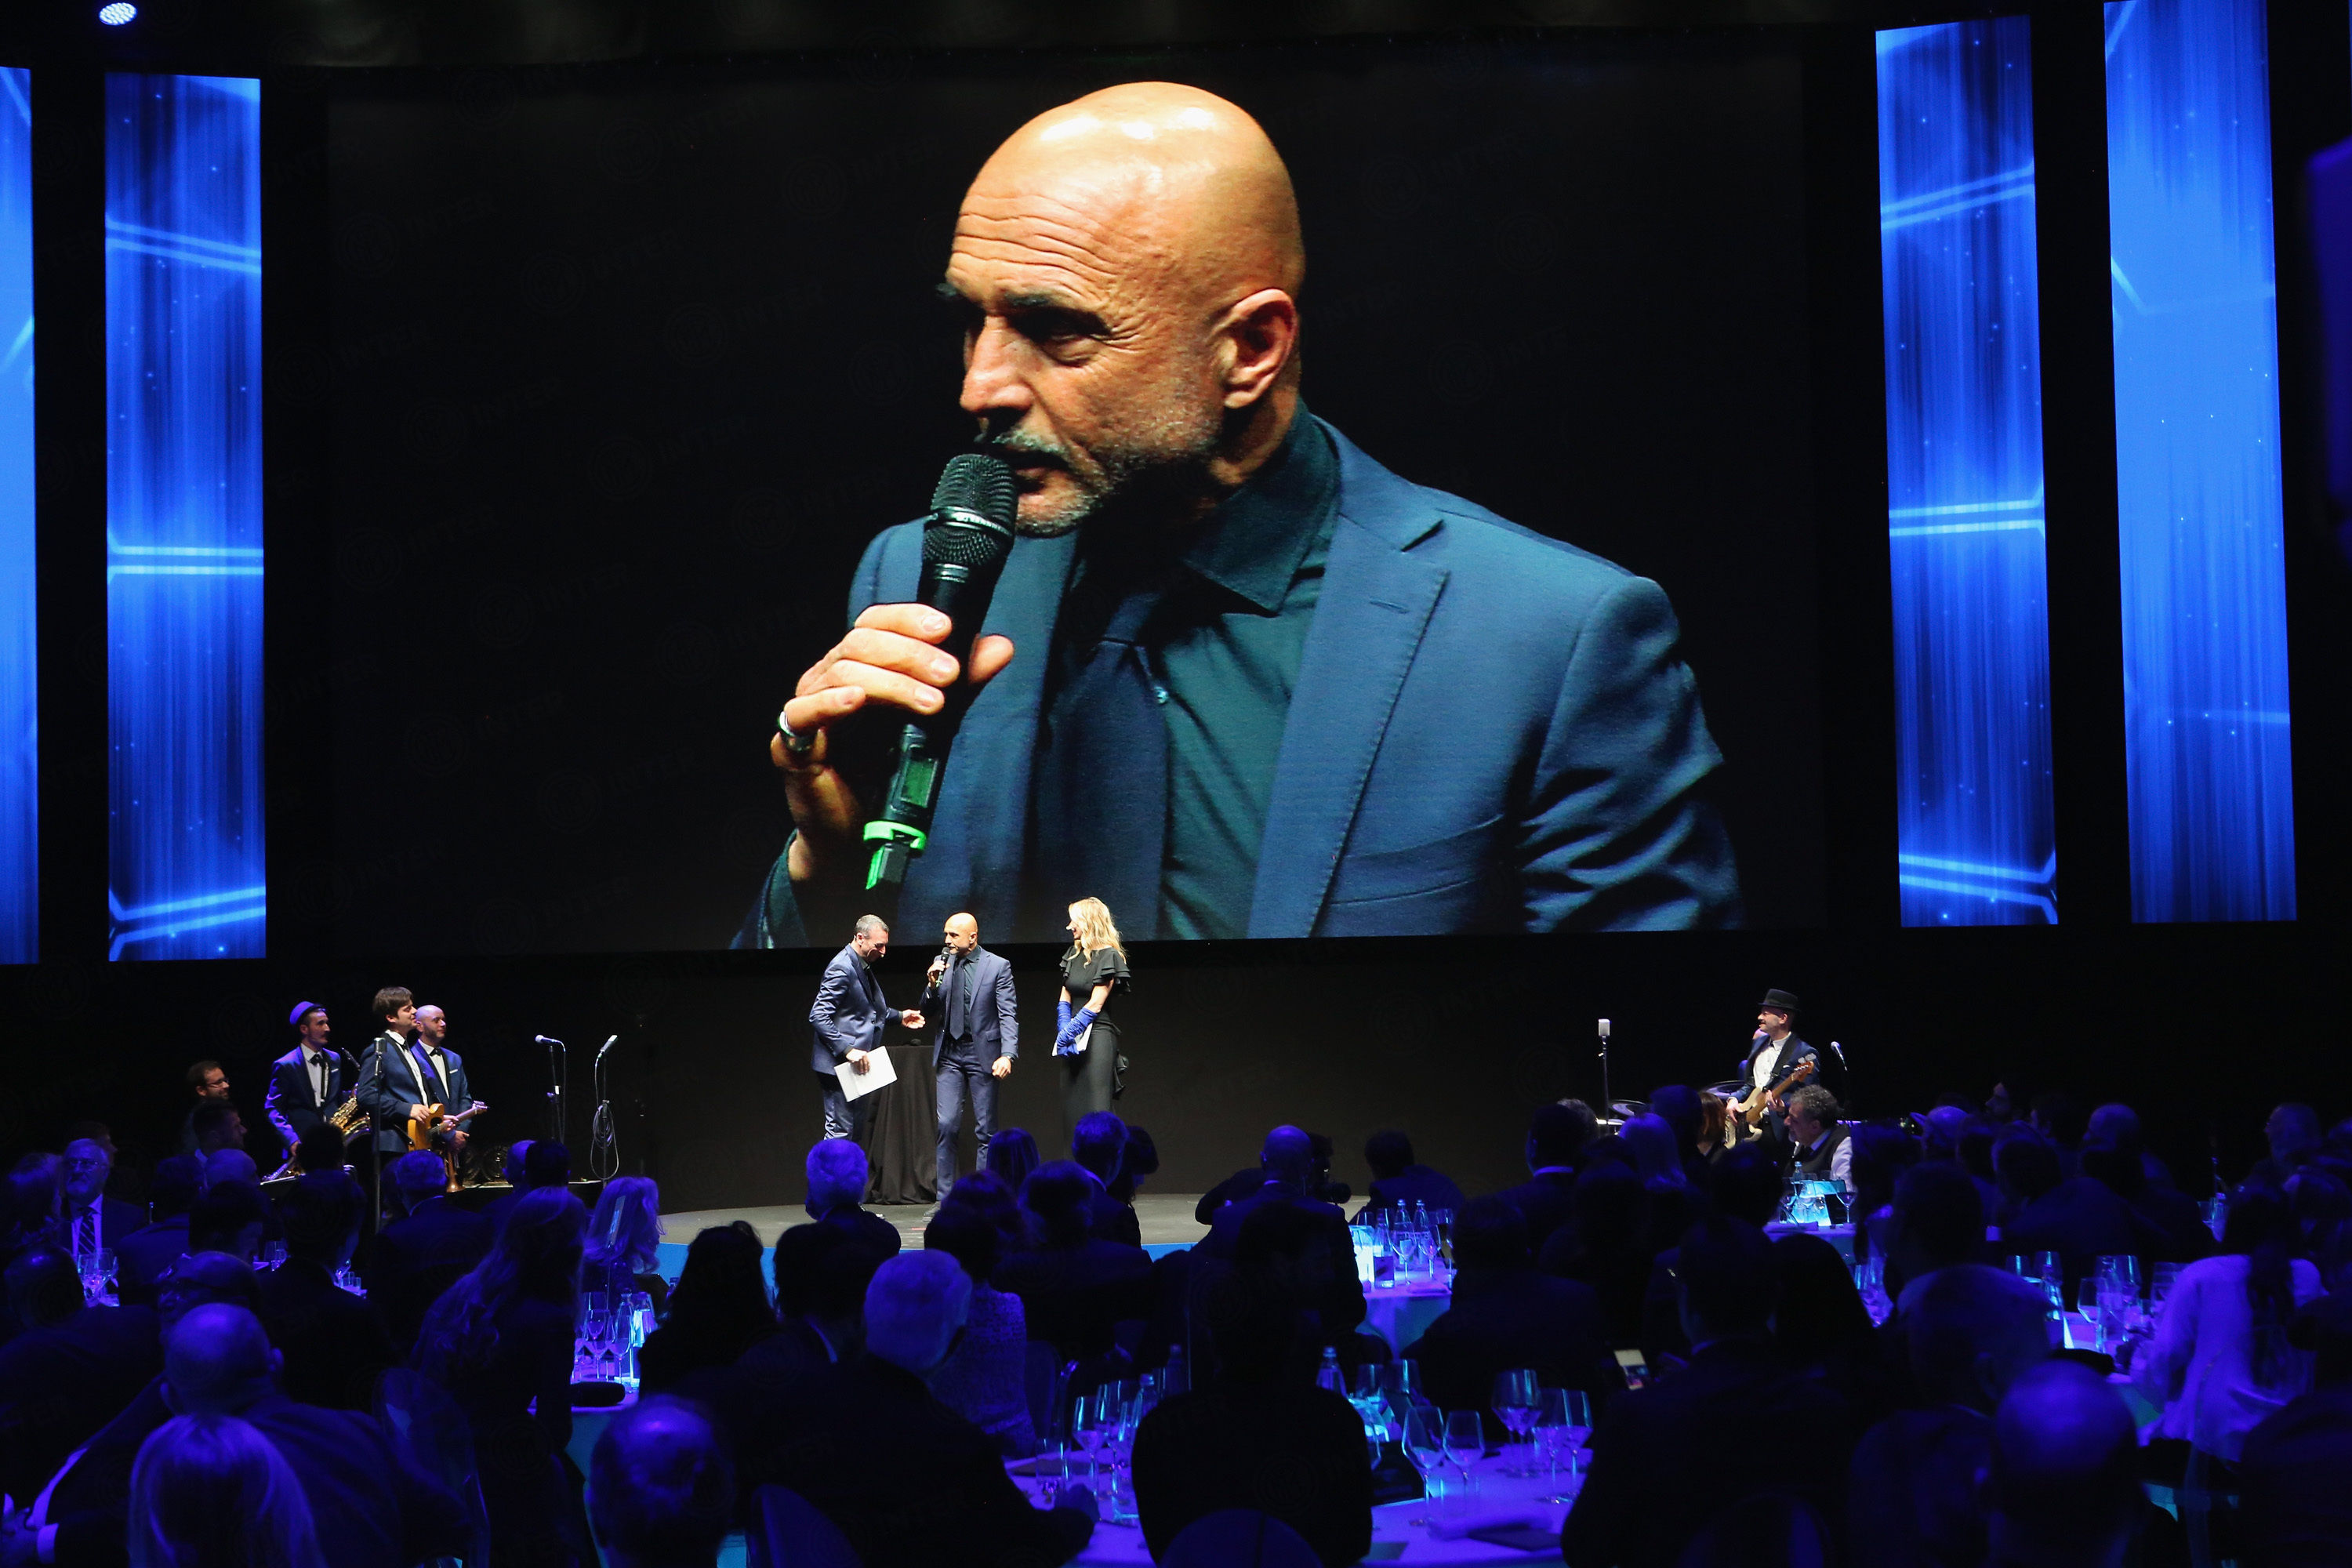 The best images from this evening's 110 Nerazzurri Gala